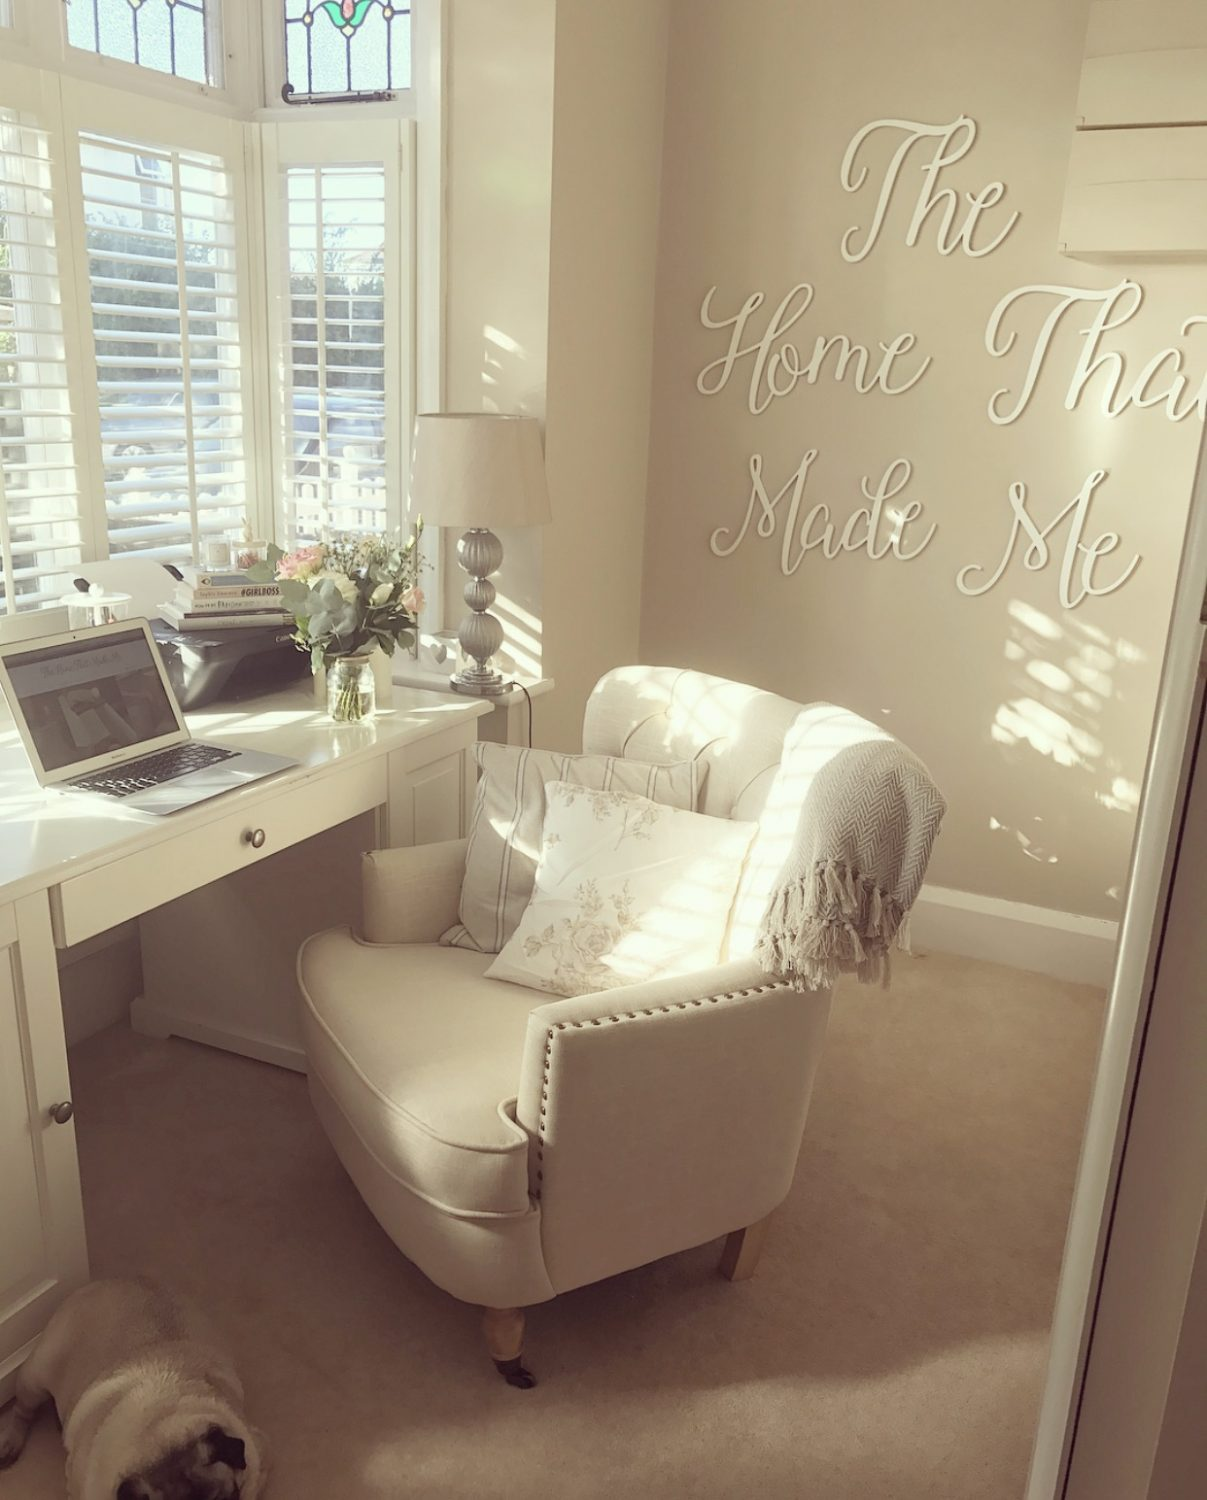 THTMM Interior Styling Workshop Weekend – The Home That Made Me